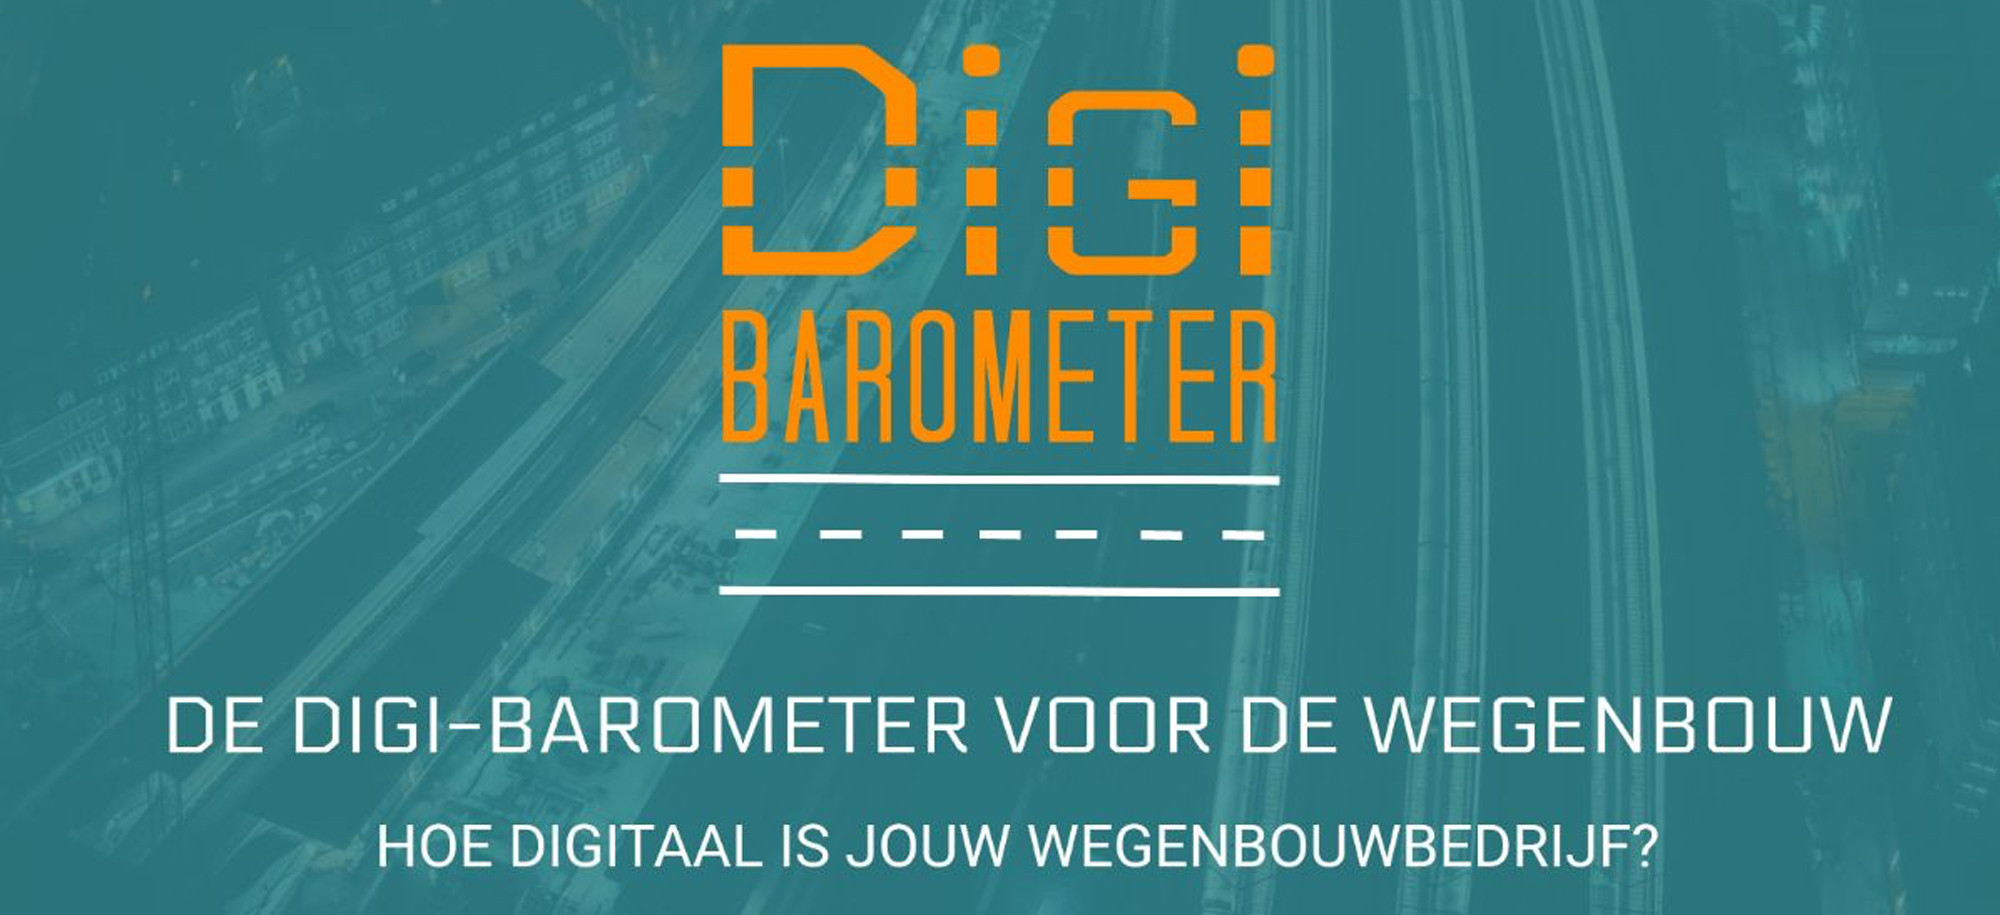 DigitaleBarometer-header.jpg